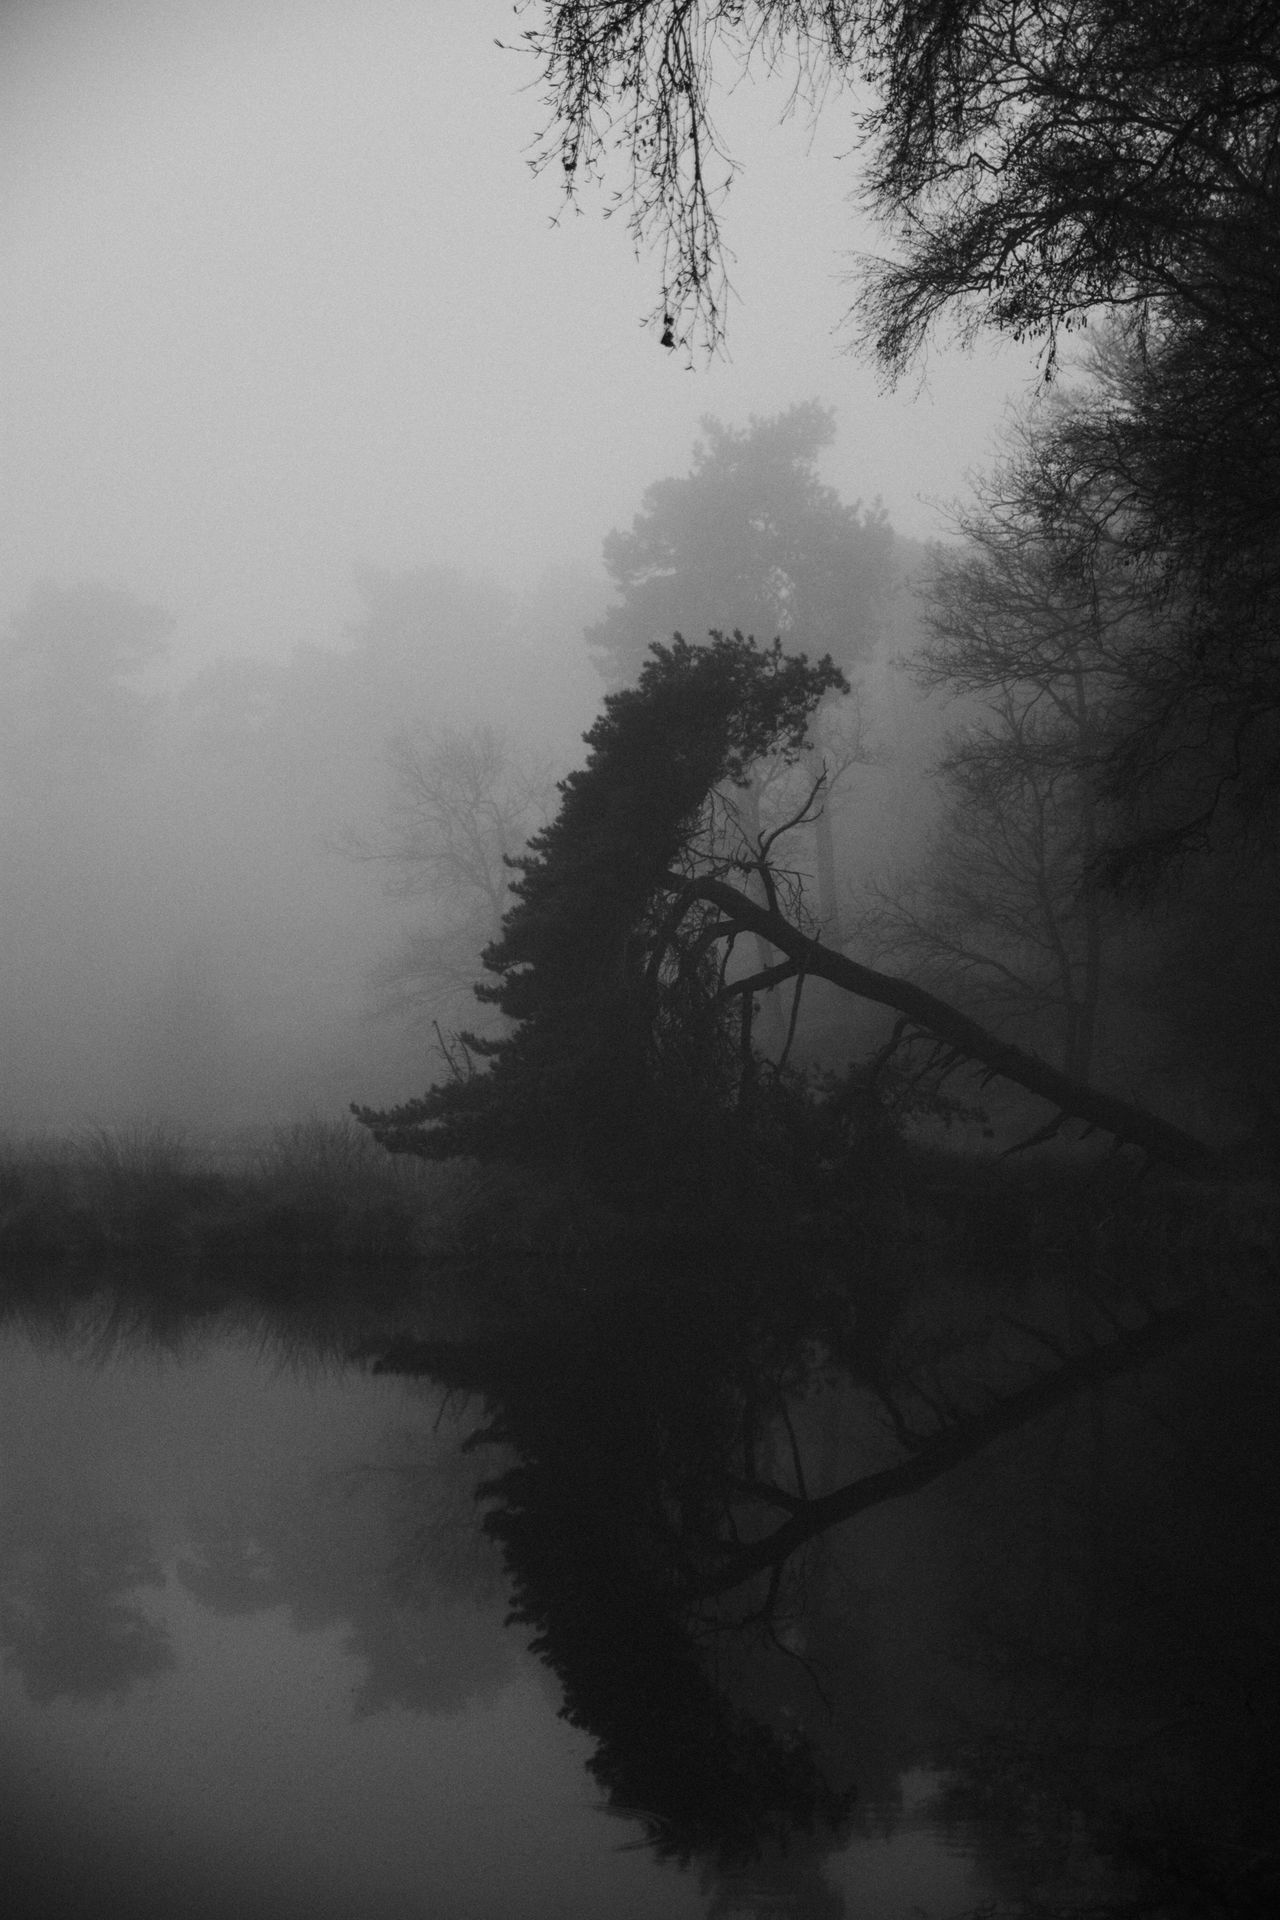 Overasseltse Vennen, Nijmegen. Tree Nature Water Tranquility Beauty In Nature Fog Sky Scenics Tranquil Scene Hazy  Growth No People Idyllic Landscape Lake Mist Outdoors Branch Day Check This Out Beautiful The Week Of Eyeem Nature_collection EyeEm Nature Lover Hello World